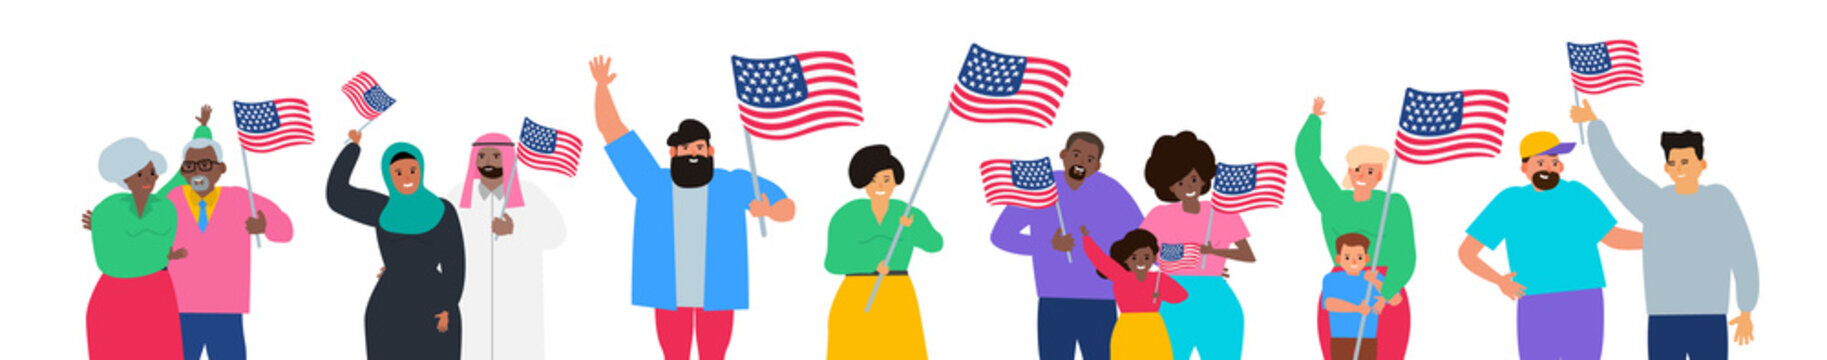 happy multiracial people holding american flags happy independence day usa vector illustration on white background